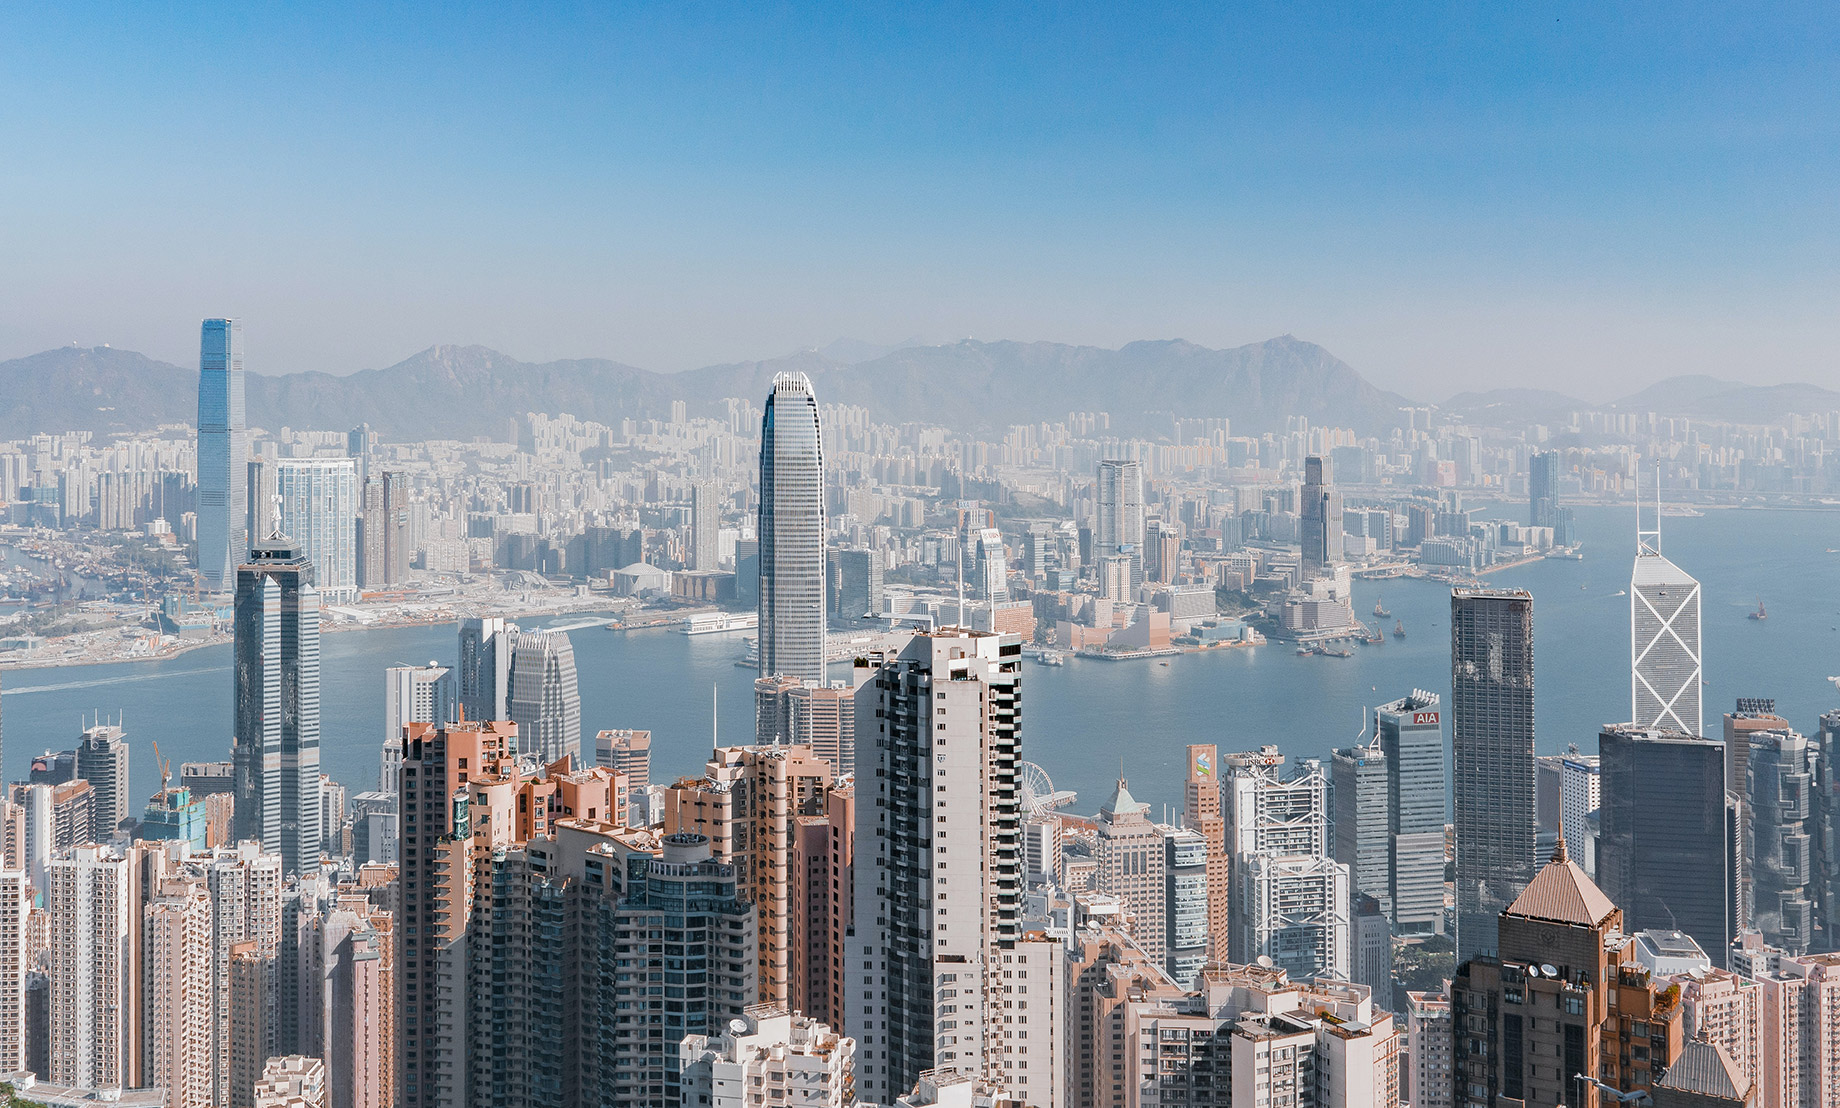 Hong Kong, China – The Most Expensive Real Estate Cities in the World